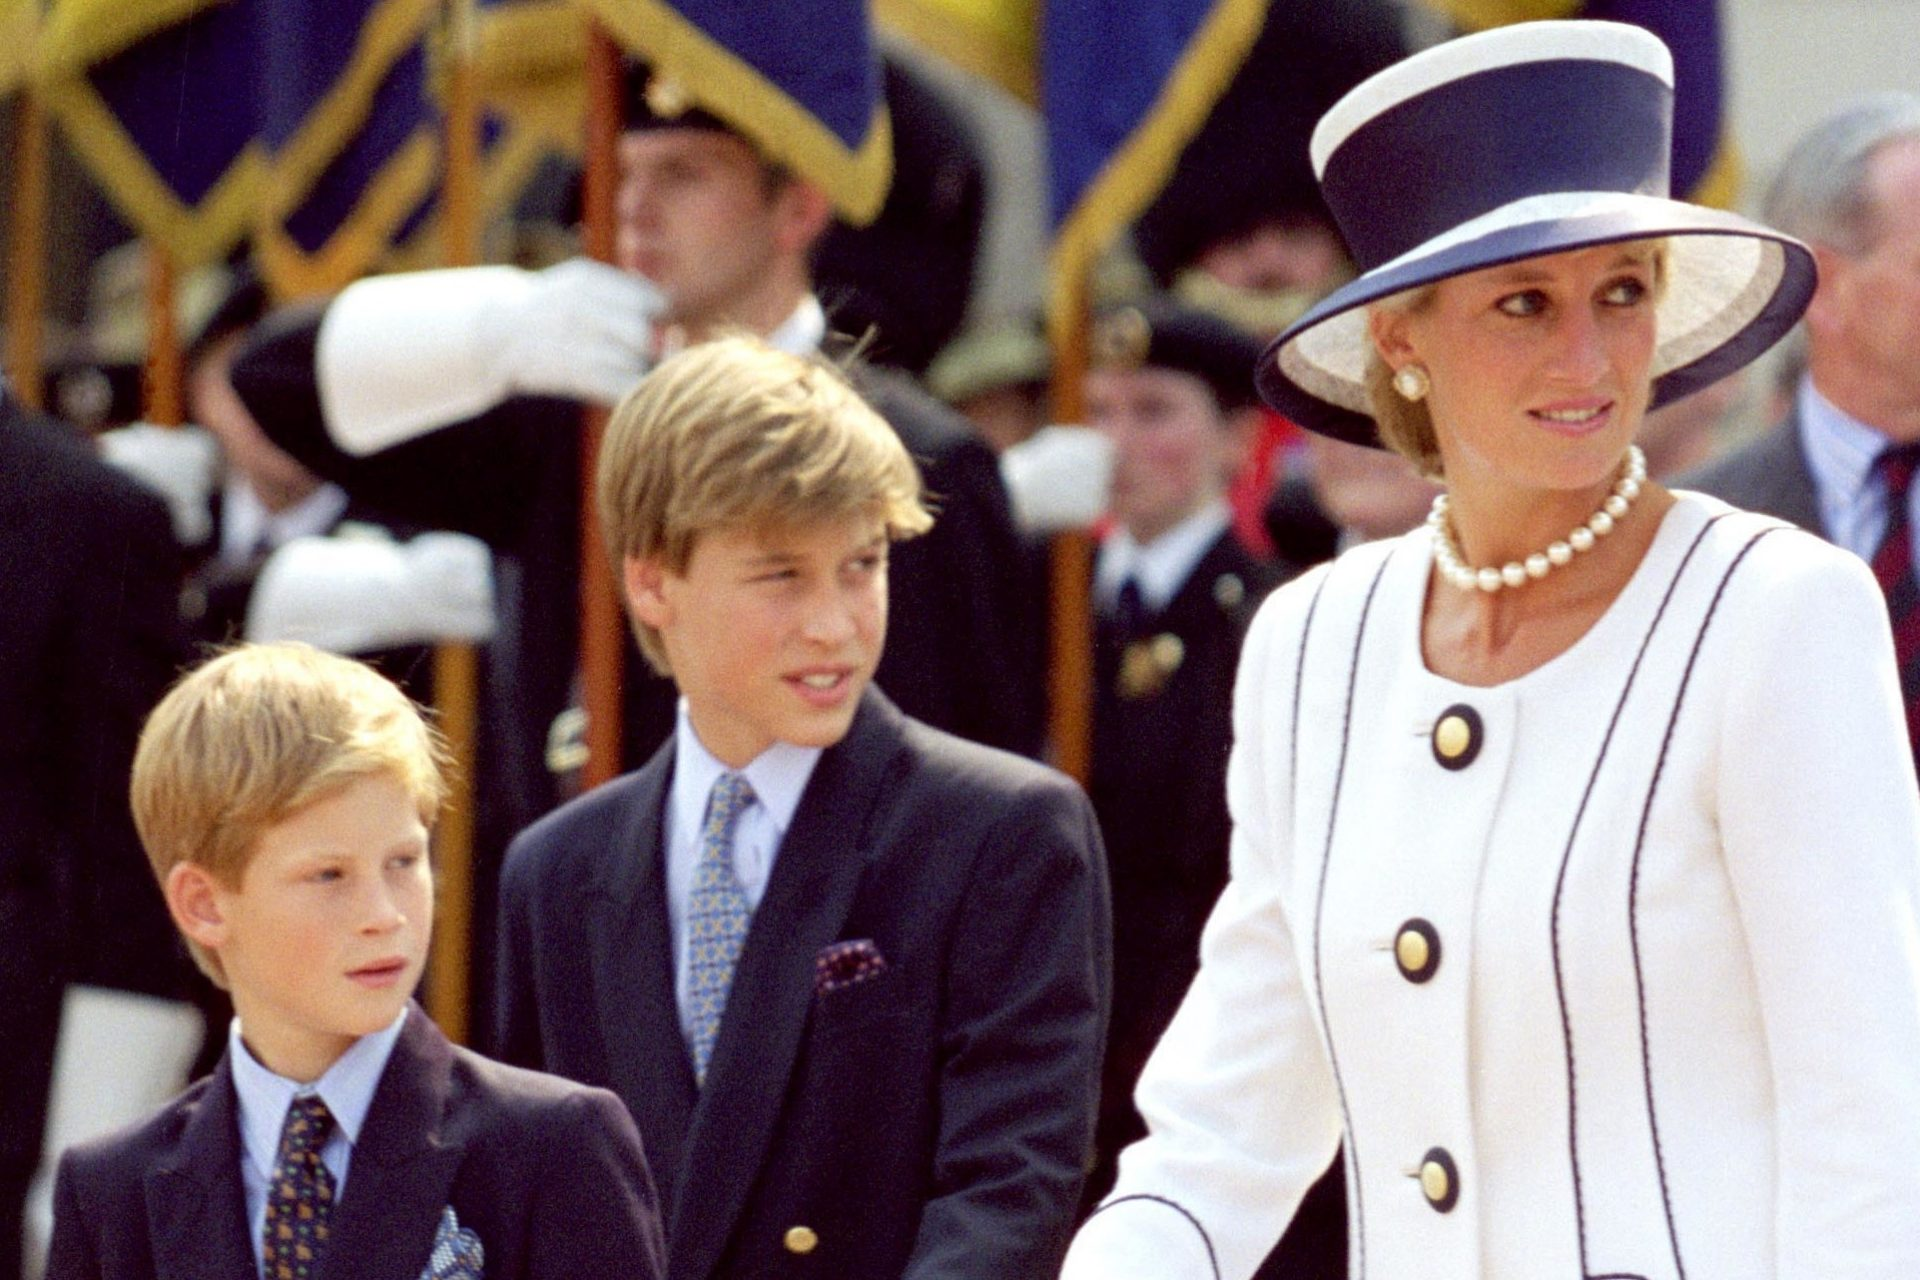 Diana, William and Harry: the story of a loss